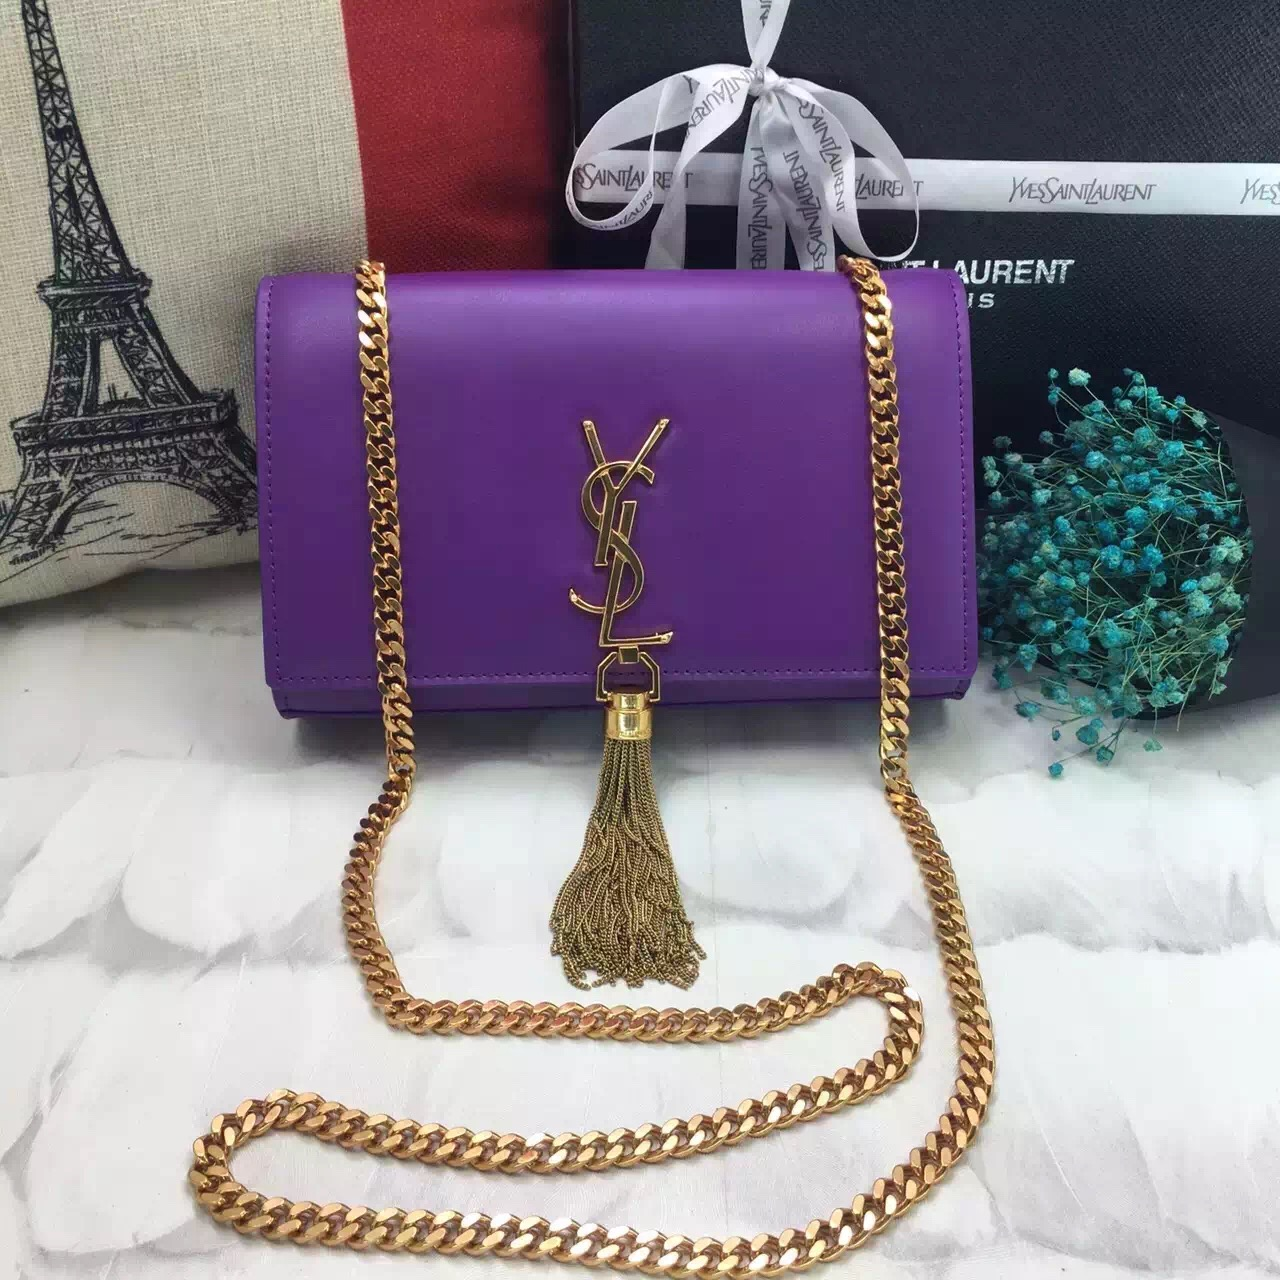 YSL Tassel Chain Bag 22cm Smooth Leather Purple Gold